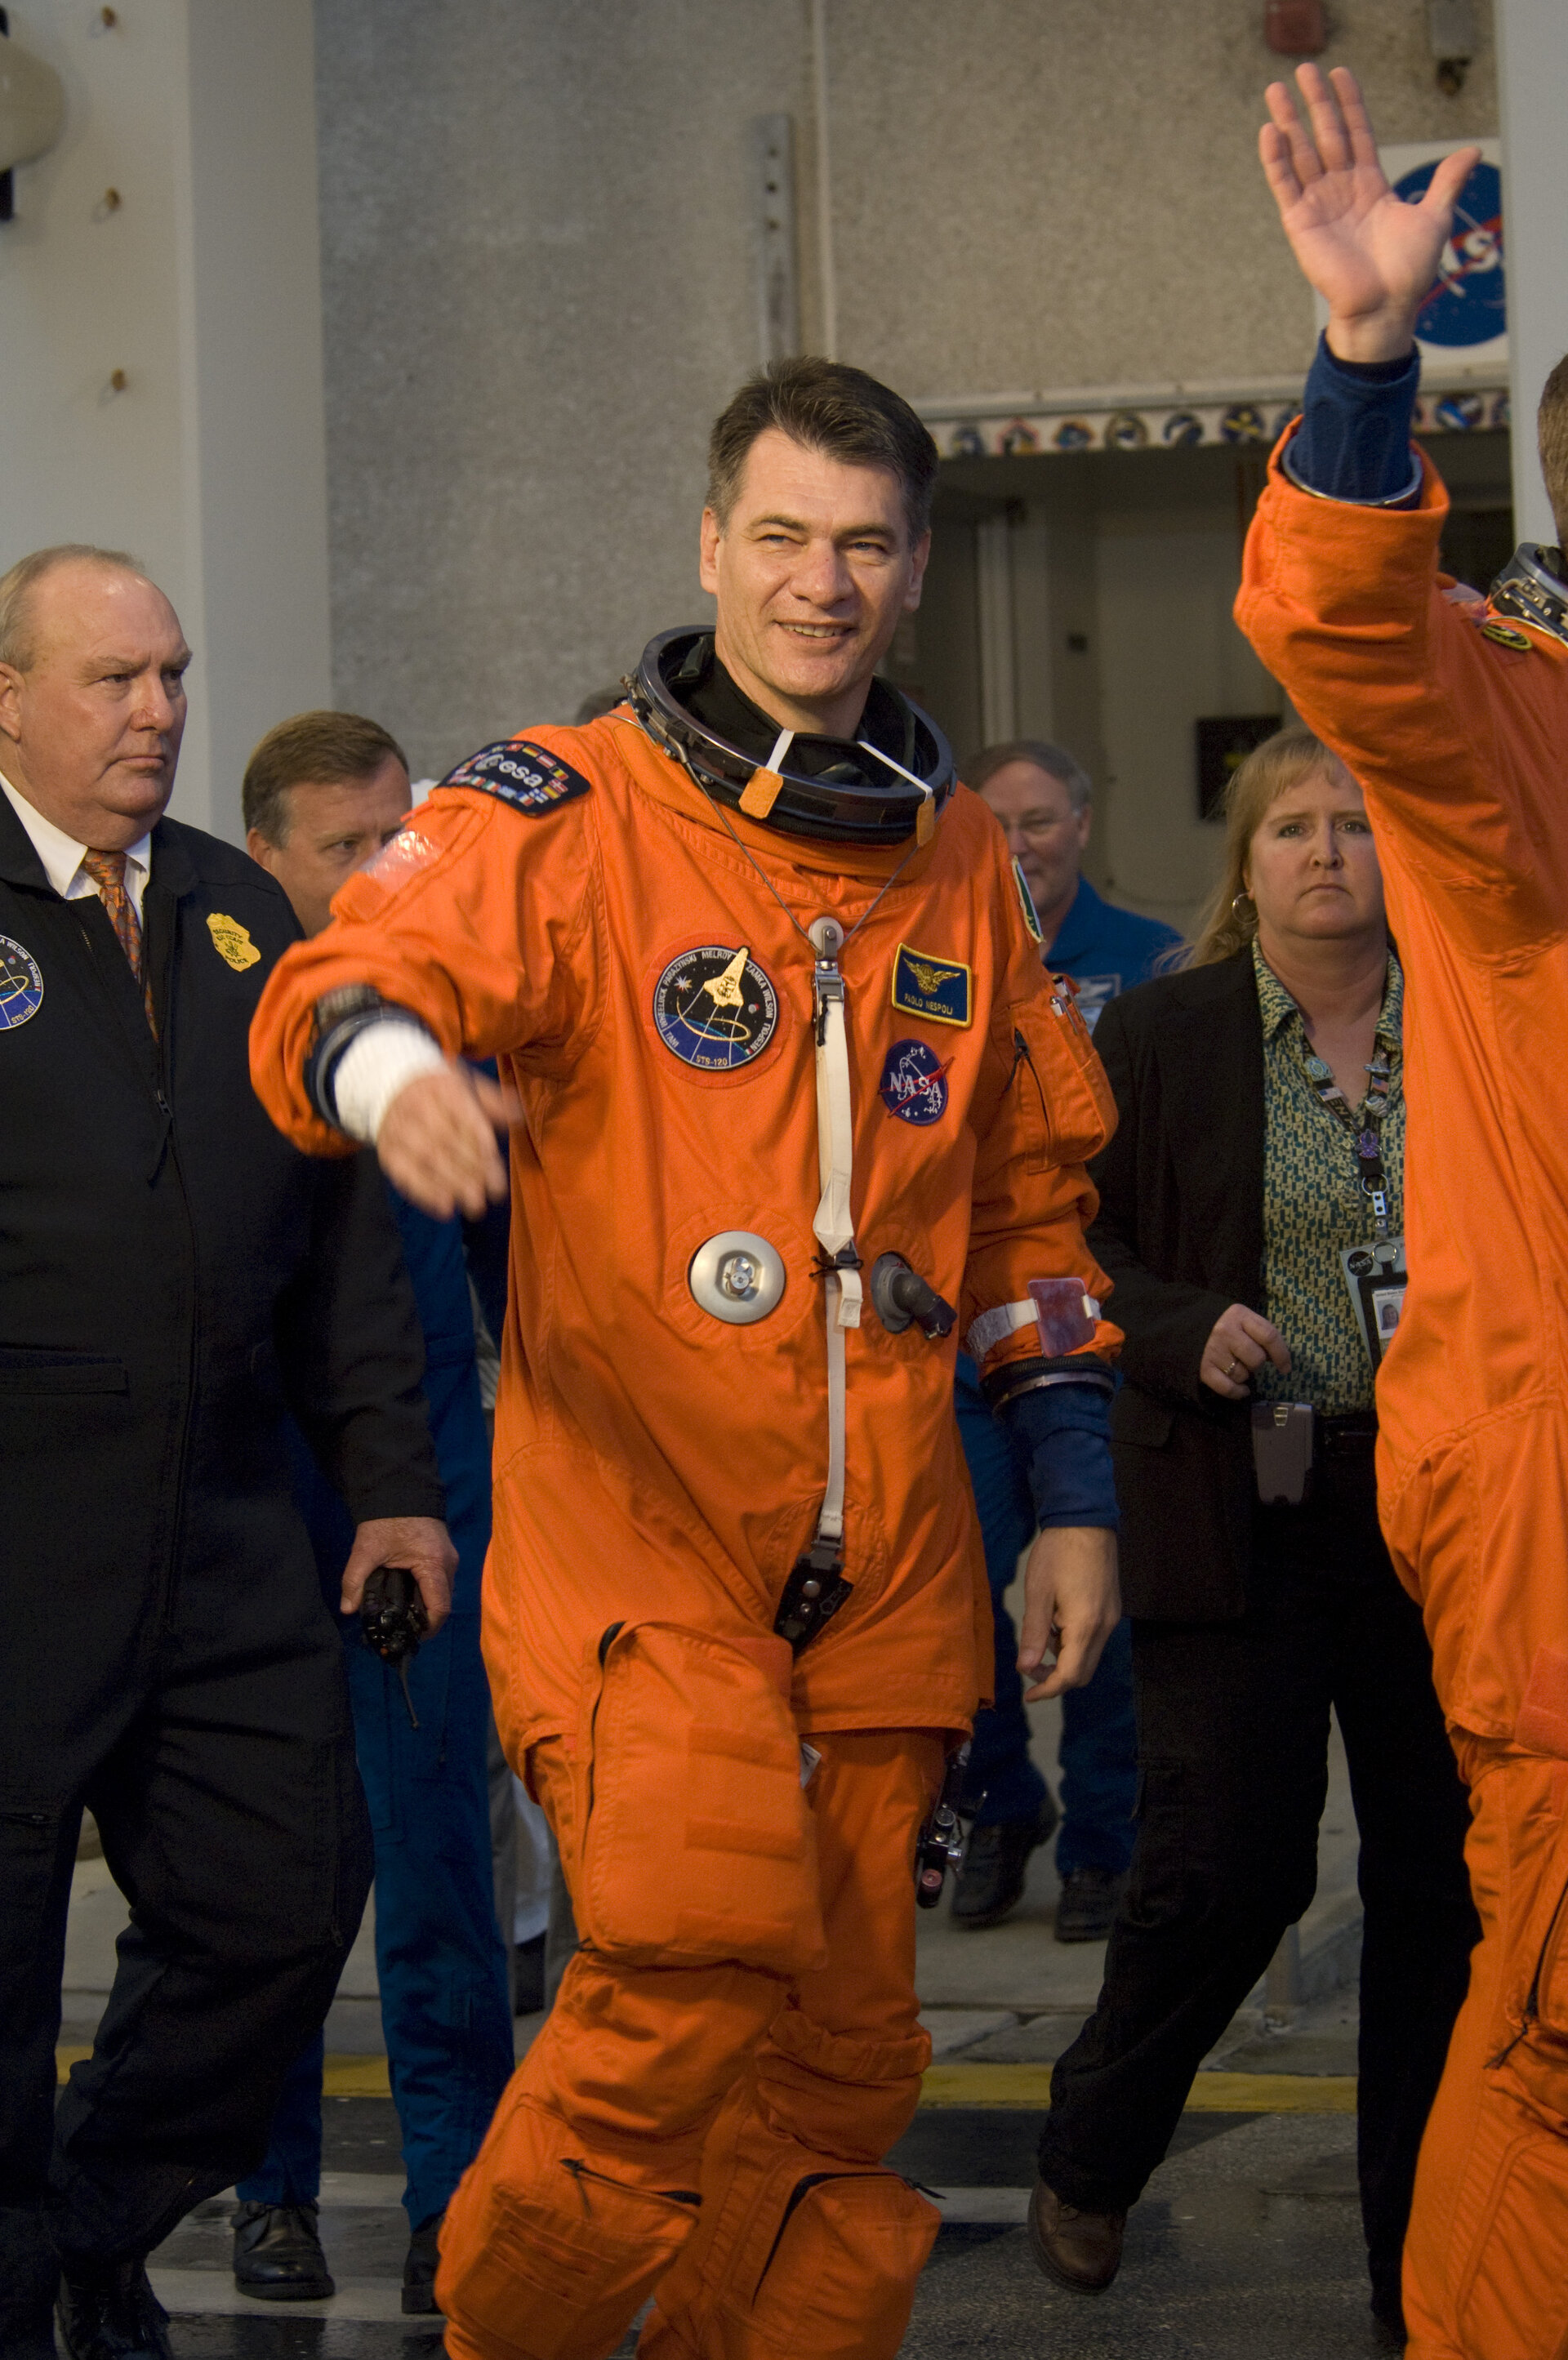 Paolo Nespoli during STS-120 mission crew walkout